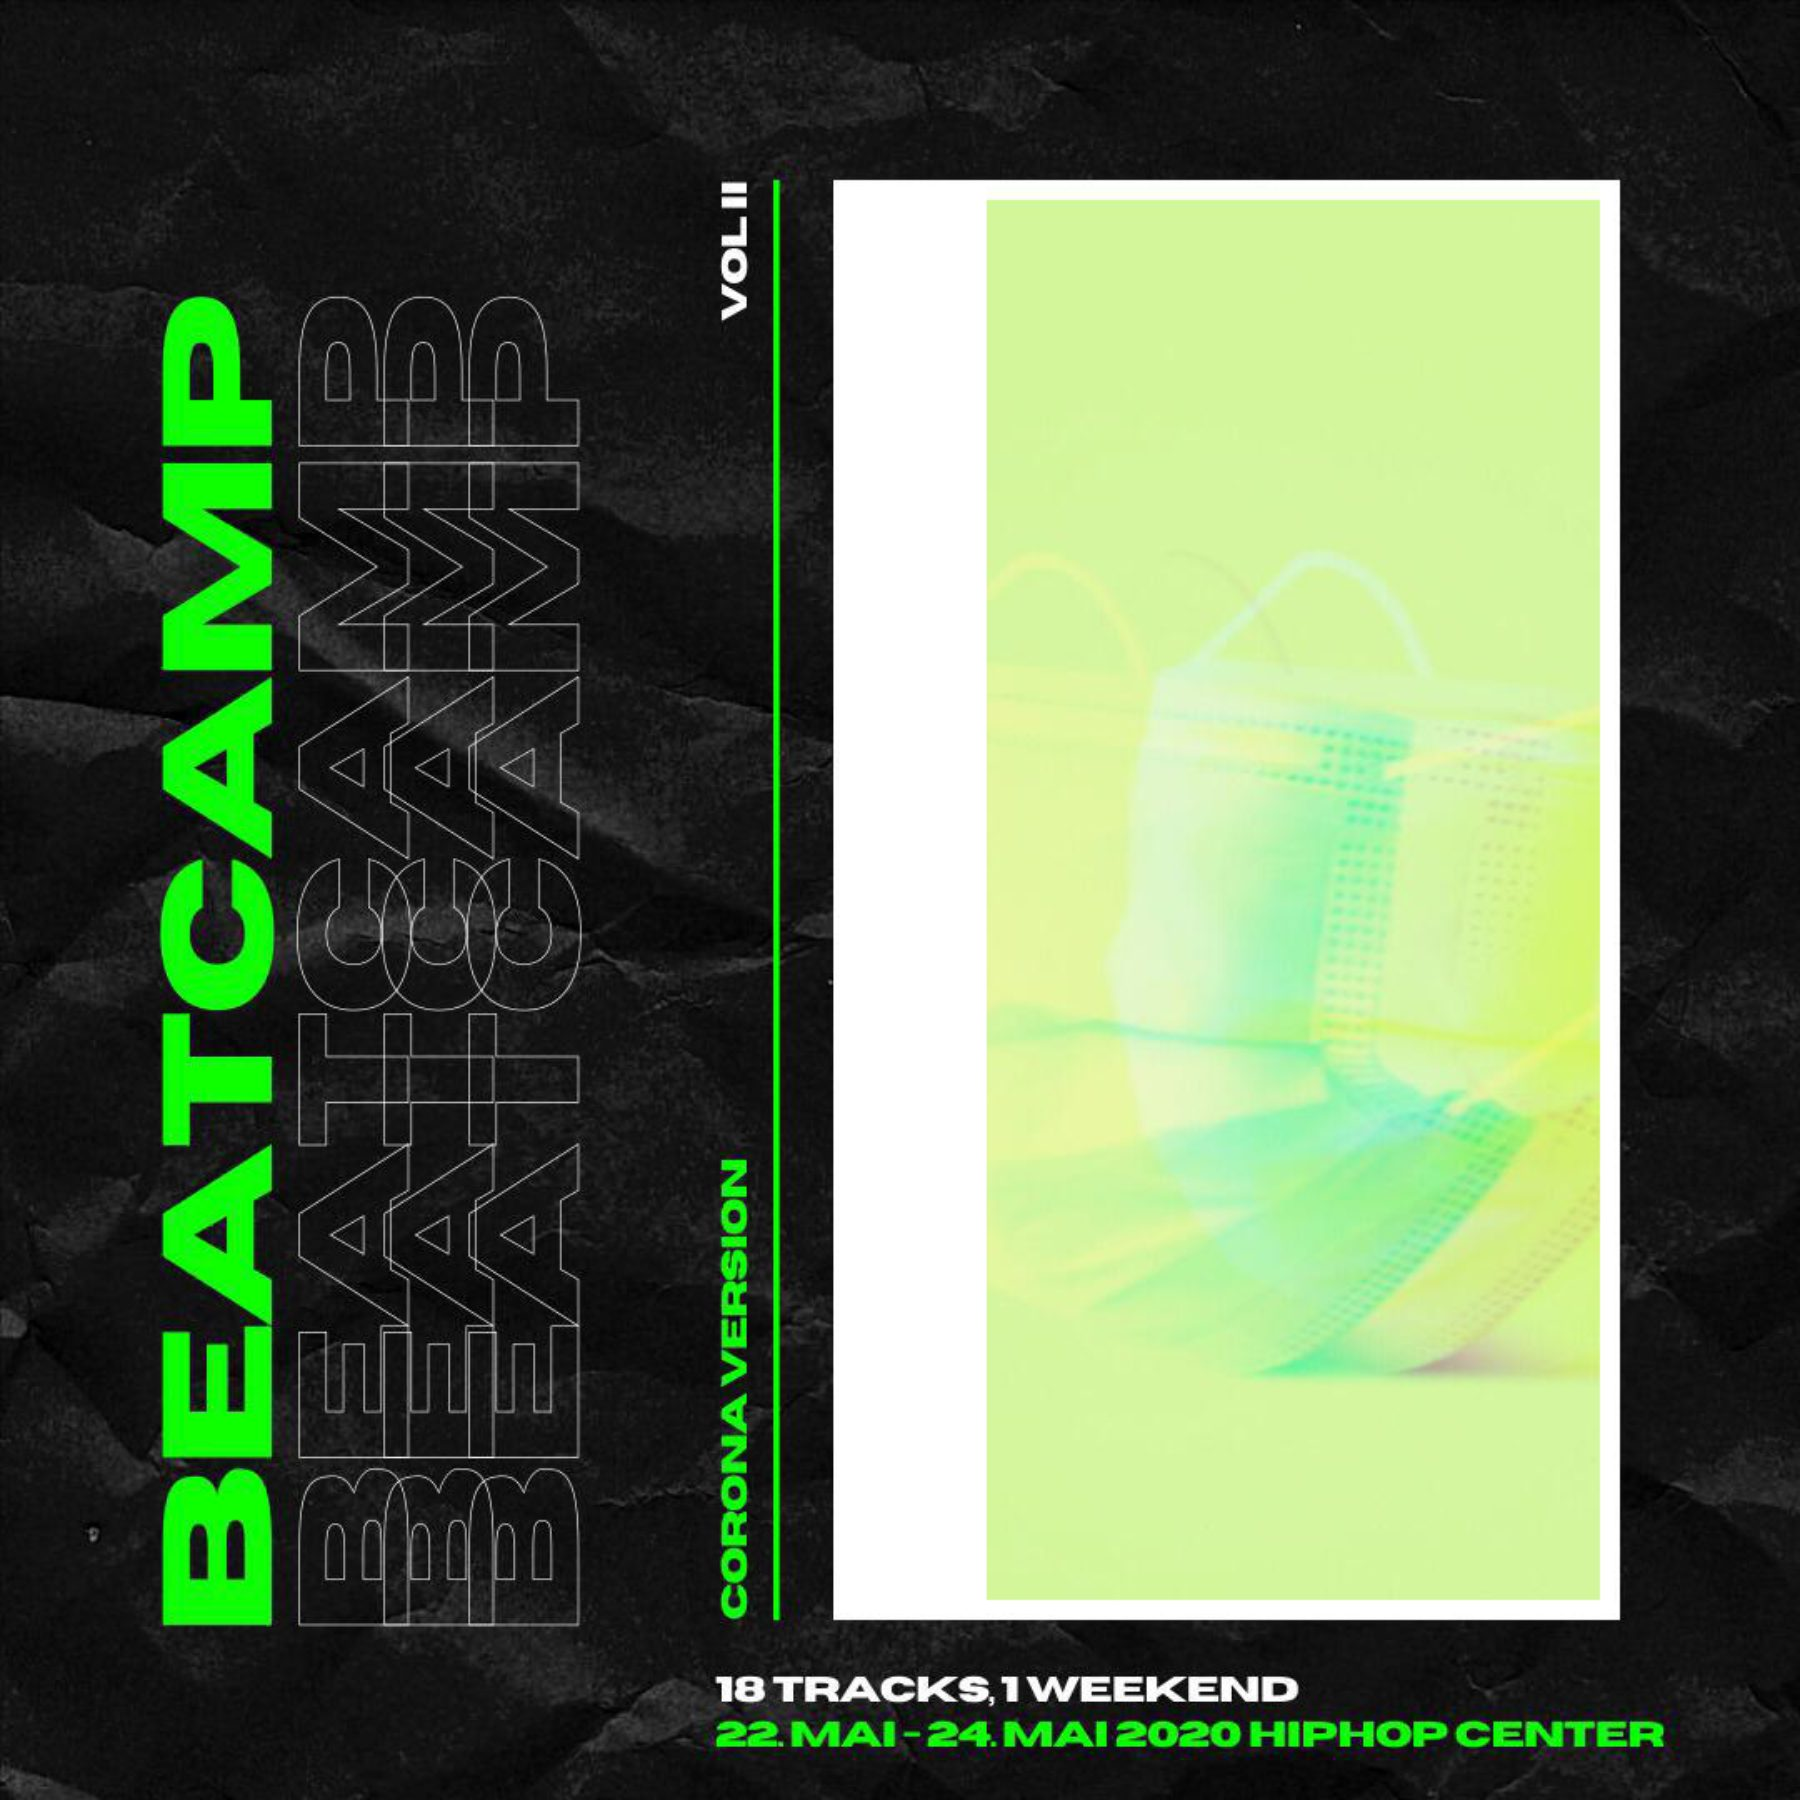 Beatcamp Vol. 2 - 1x1